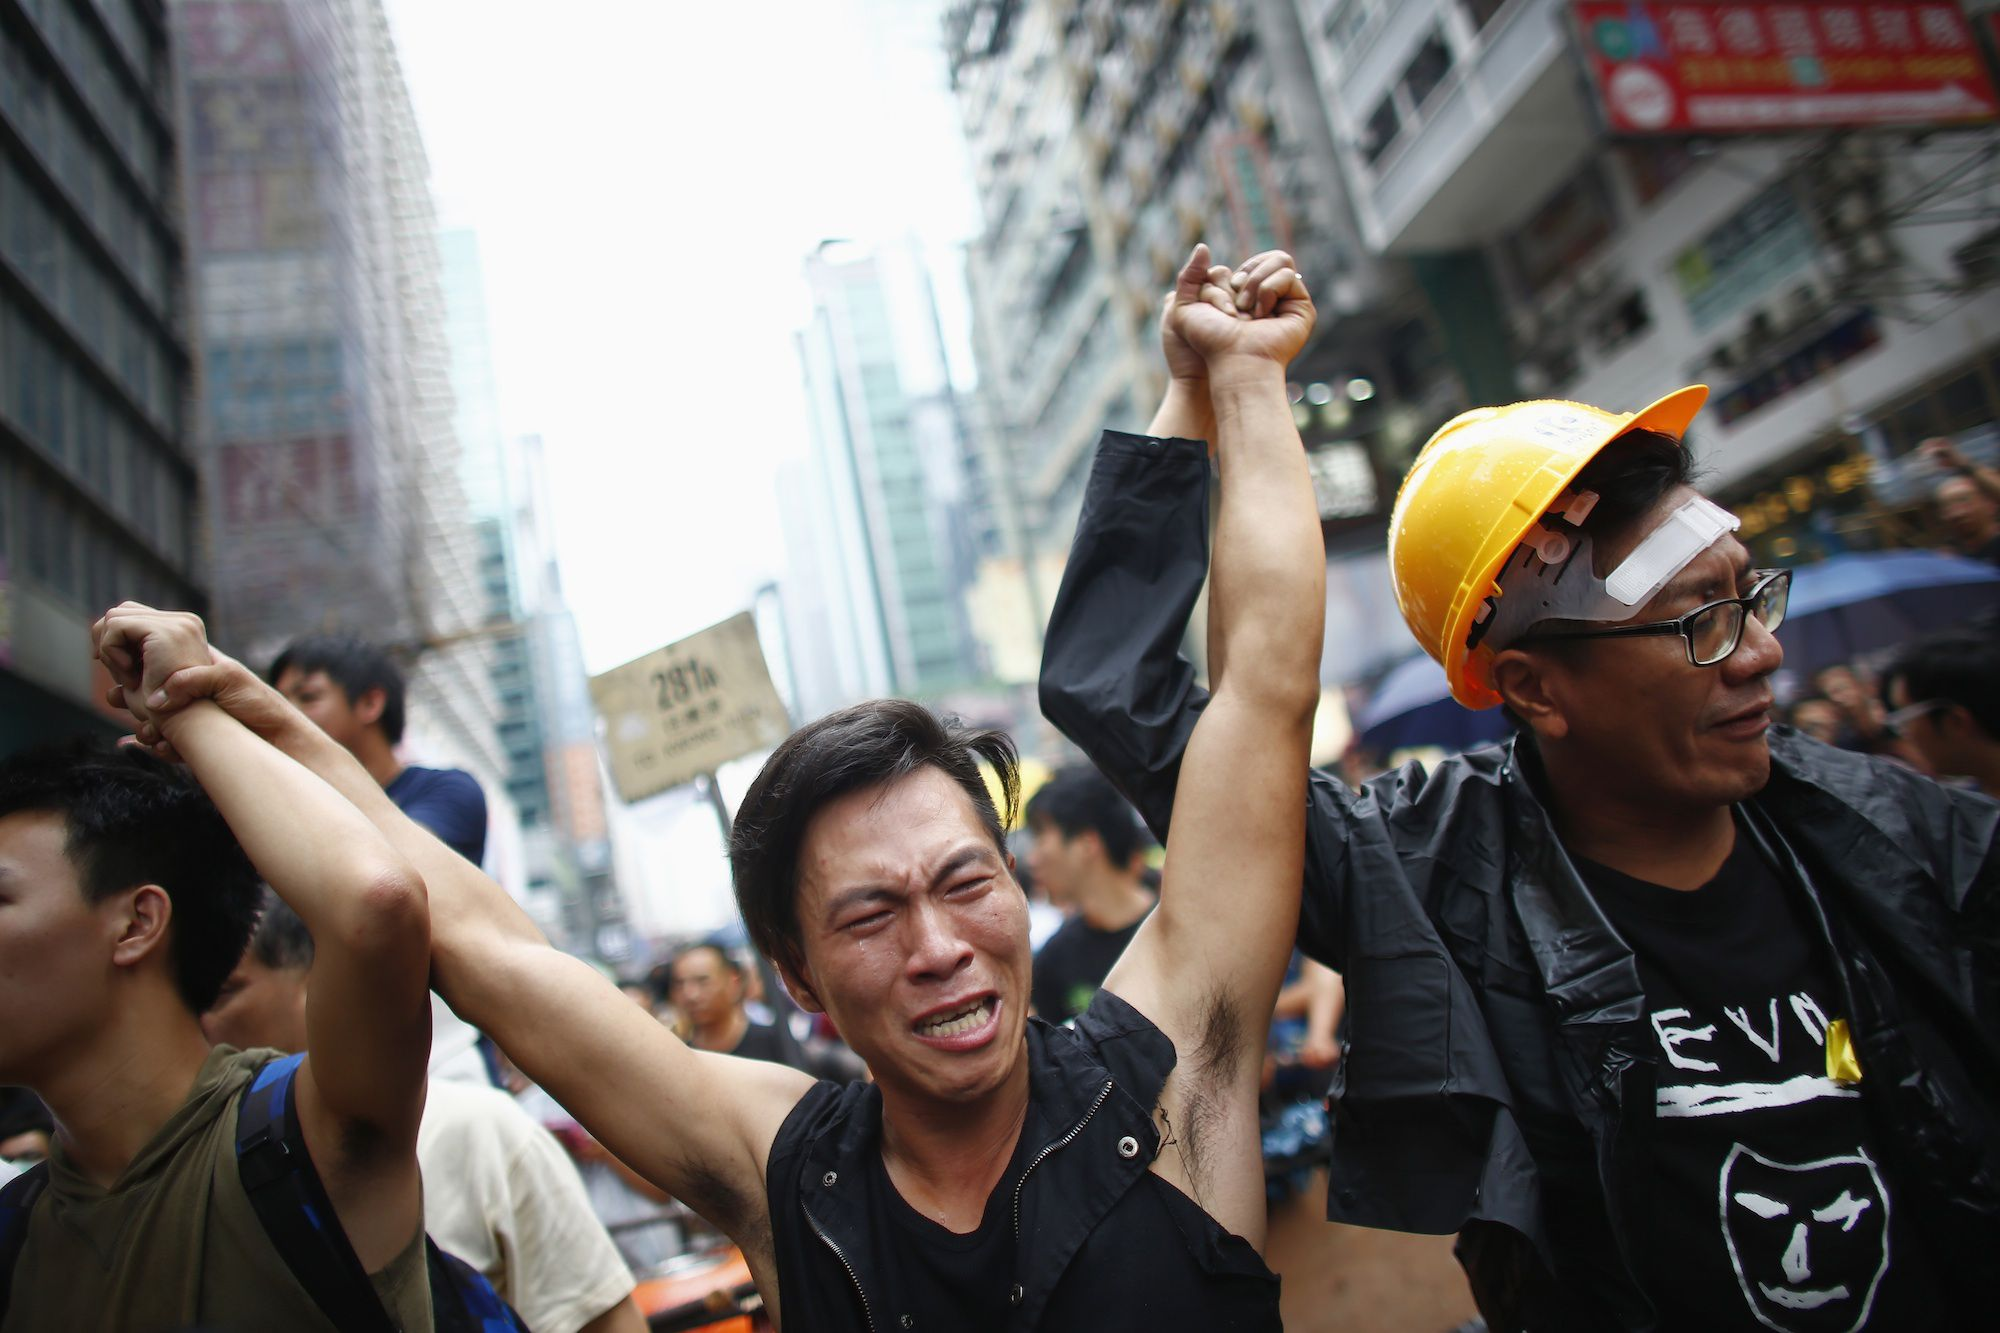 A pro-democracy protester cries after scuffles anti-protesters at a protest site in Mong Kok.